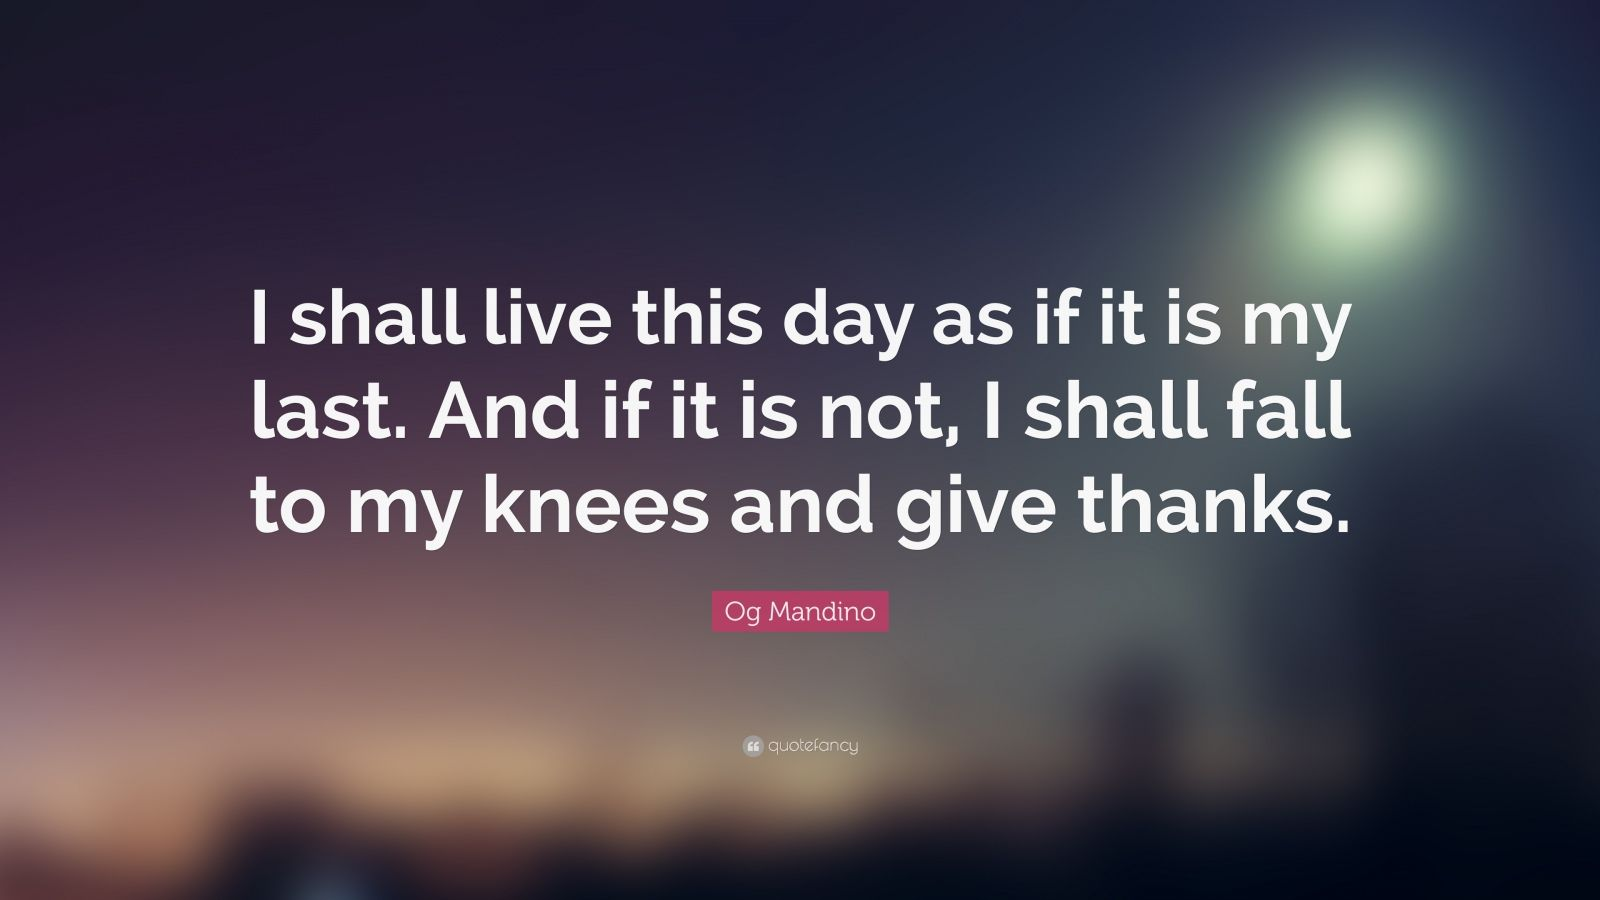 """Og Mandino Quote: """"I shall live this day as if it is my last. And if it is not, I shall fall to my knees and give thanks."""""""